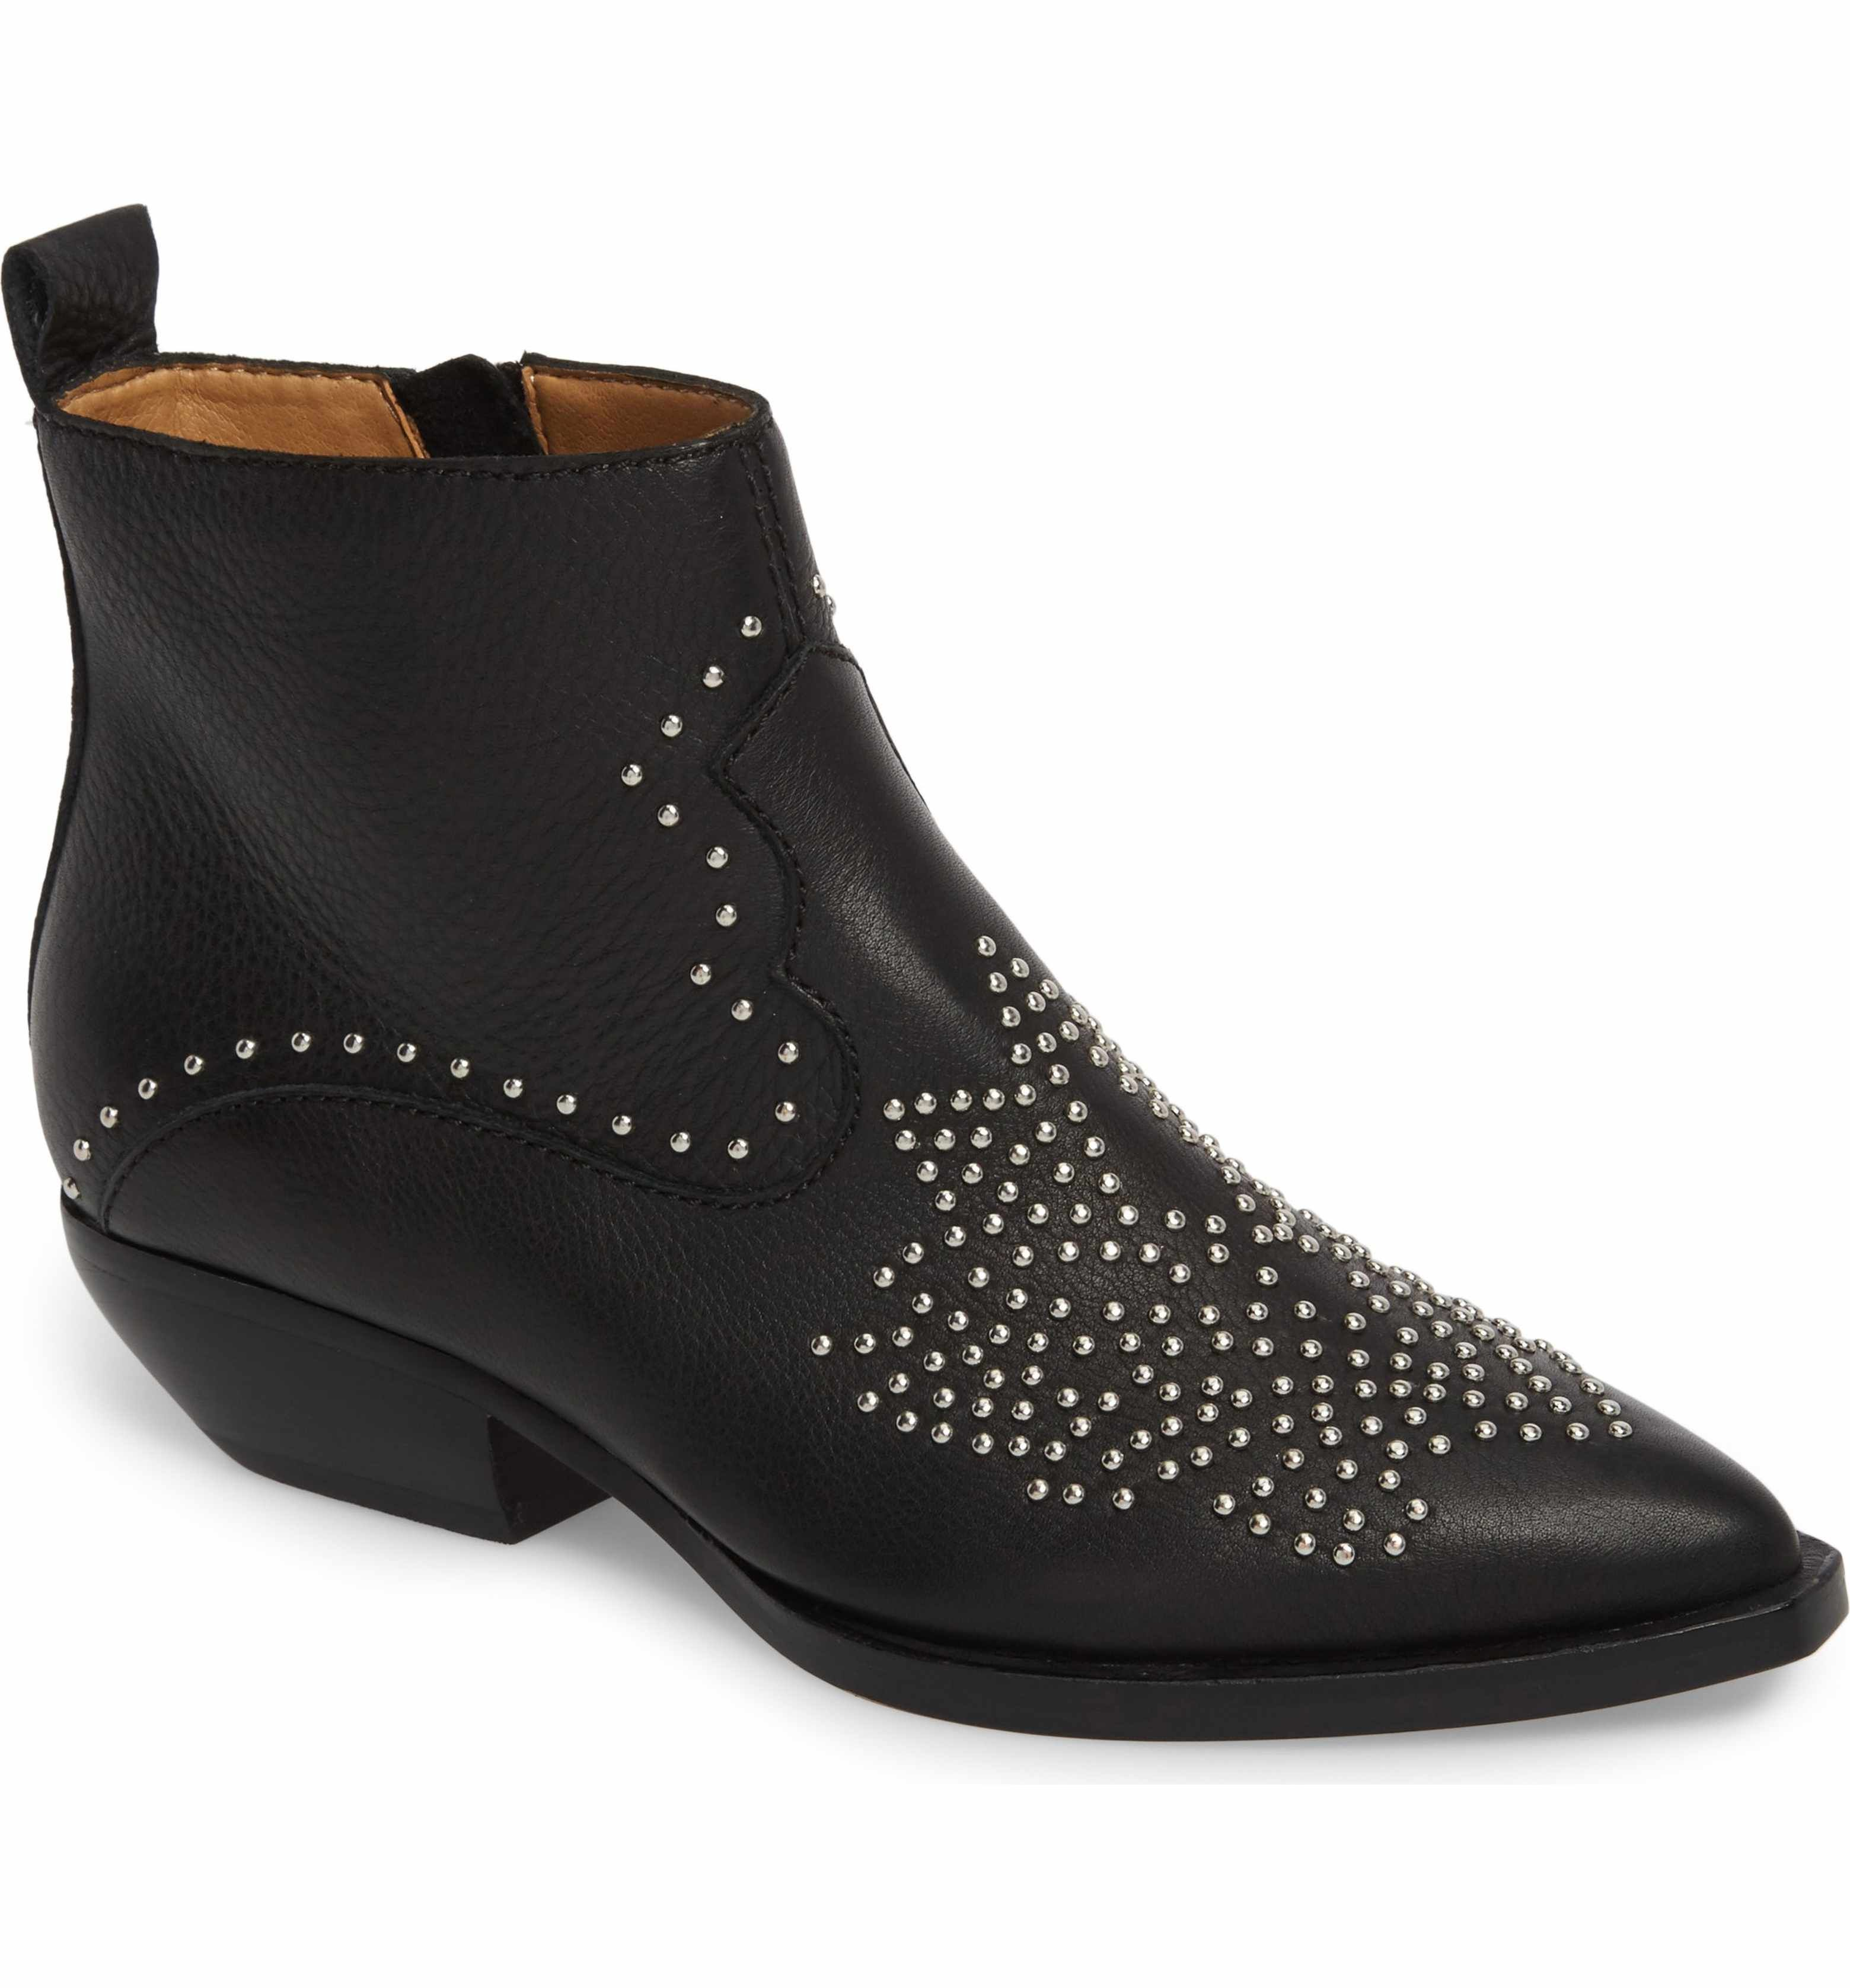 Uma Studded Chelsea Western Inspired Booties R7pVl